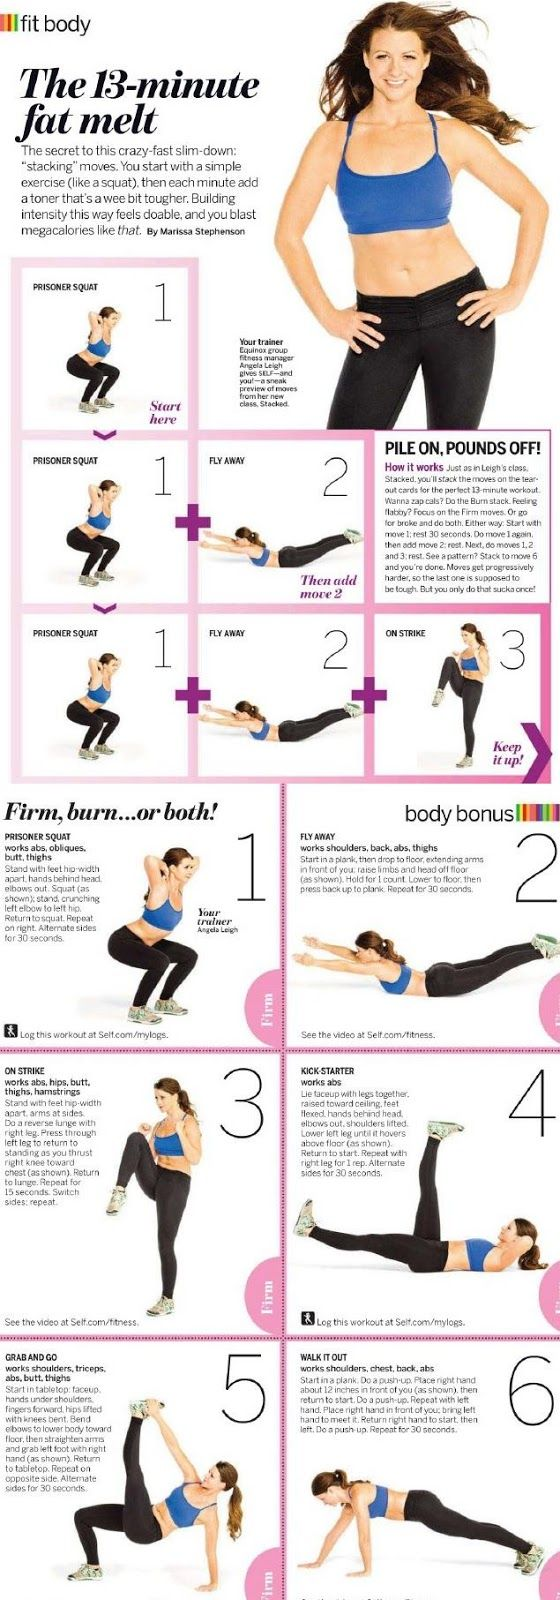 The 13-minute fat melt Get yourself in the best shape of your life with www.gymra.com. Get your free month now!!! #fitness #exercise #weightloss #diet #fitspiration #fitspo #health www.gymra.com/...